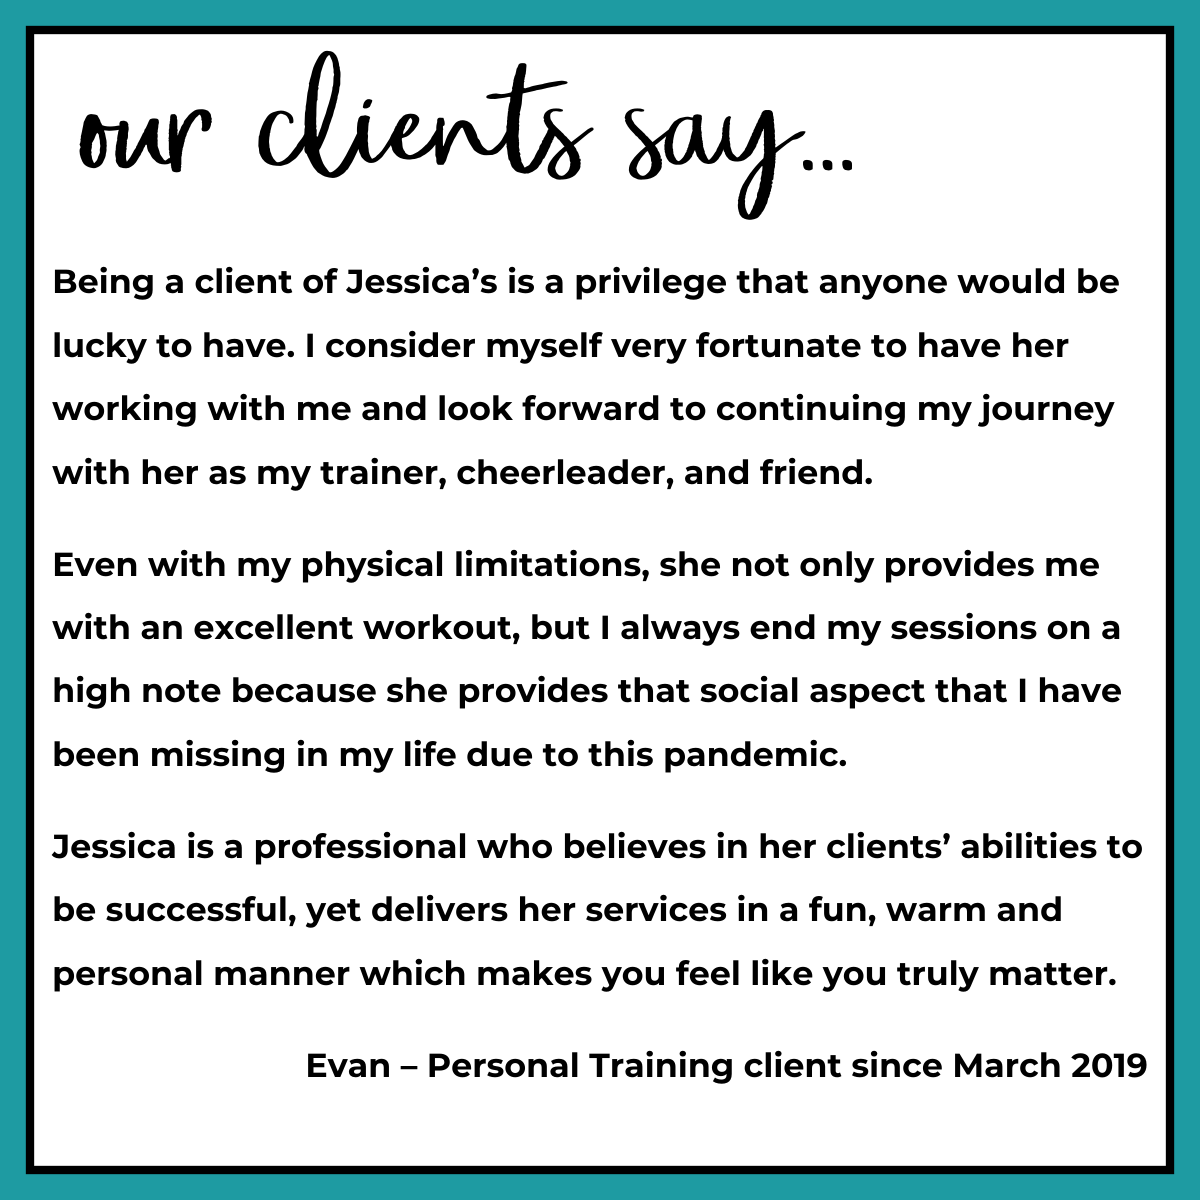 Testimonial about Jessica from client Evan